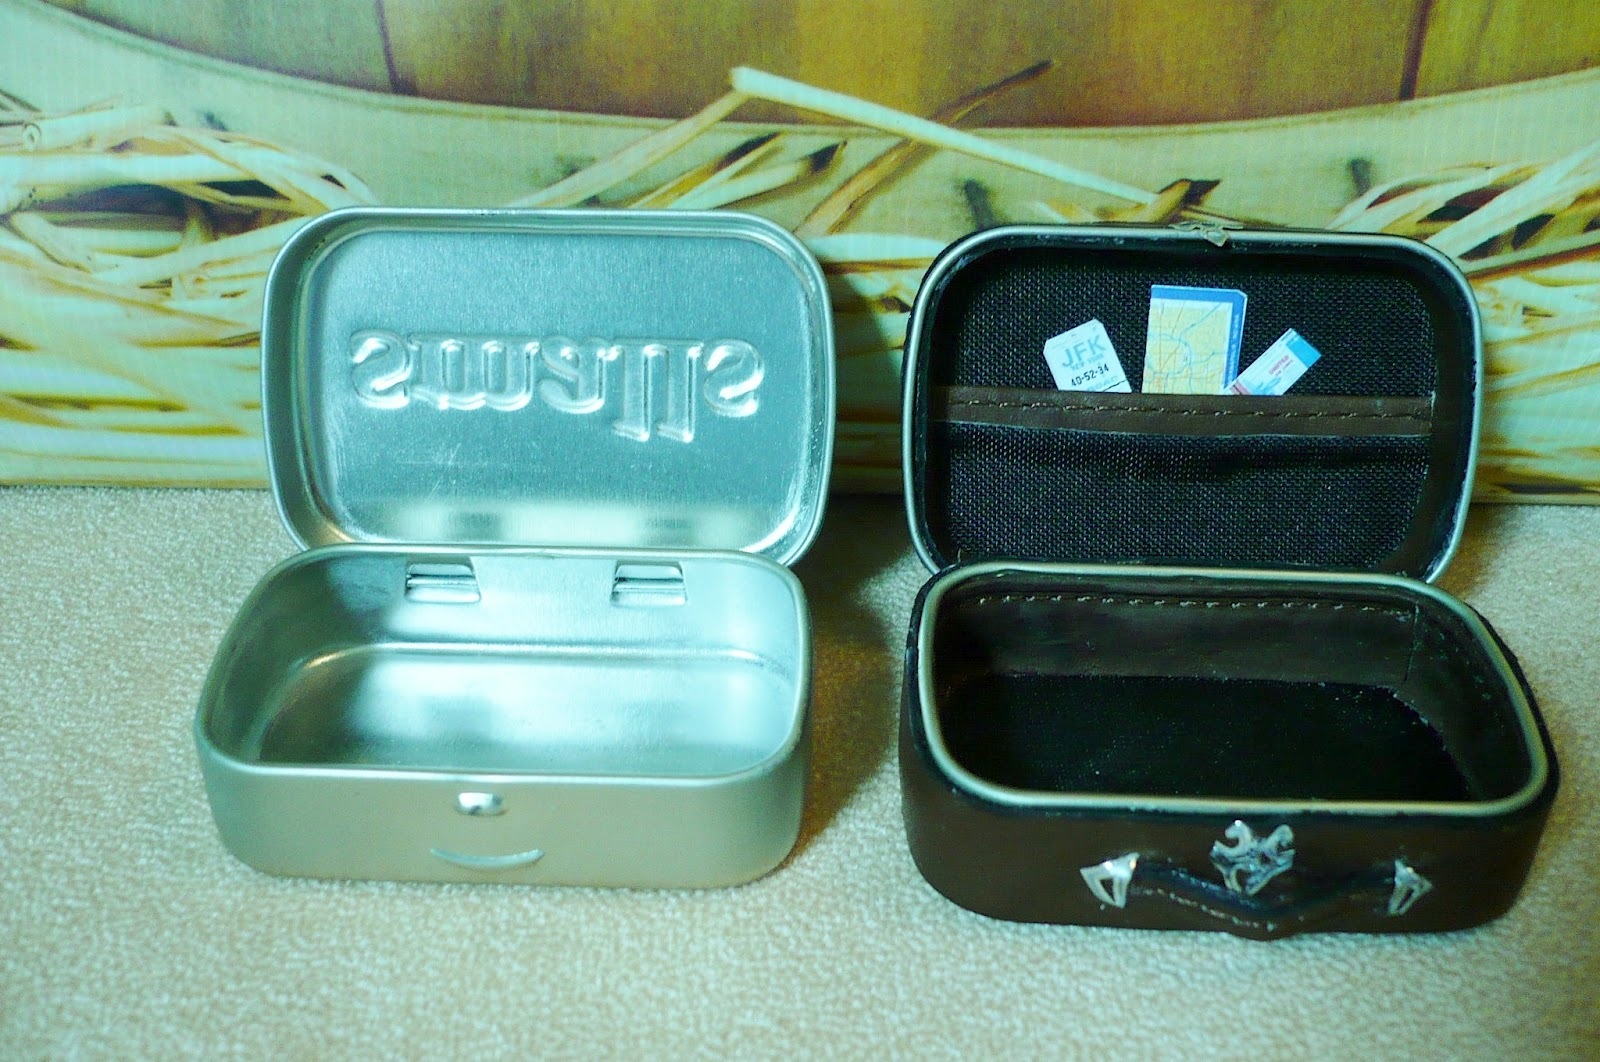 altoids case Altoids needs to take a hint from the electronics industry and drop the mint idea completely if they just sold their tins, in the exact same physical form as they are now, but as cases.